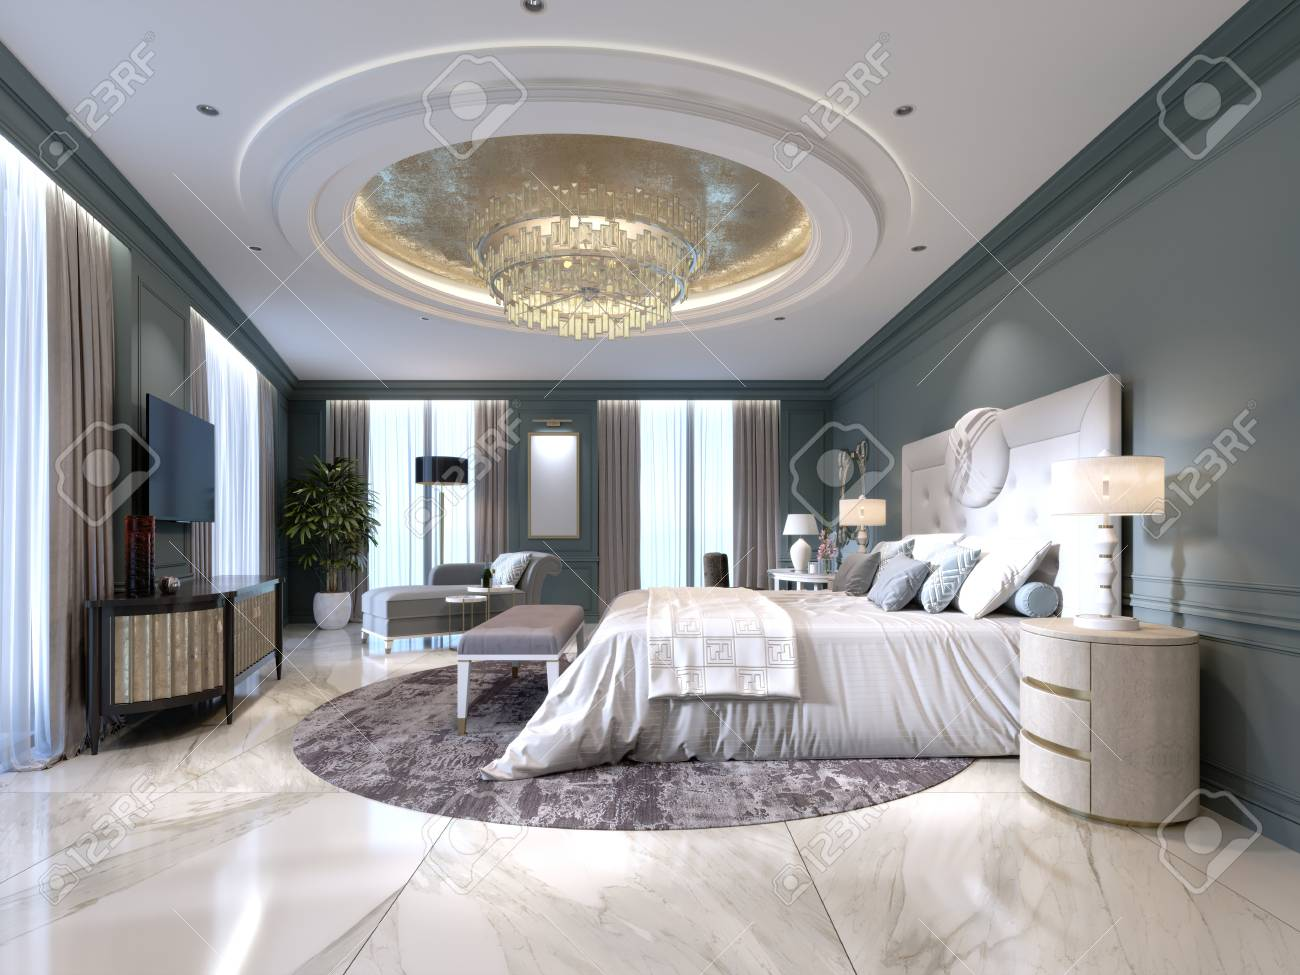 The Modern Design Of The Bedroom With A Large White Bed And A Stock Photo Picture And Royalty Free Image Image 113935040